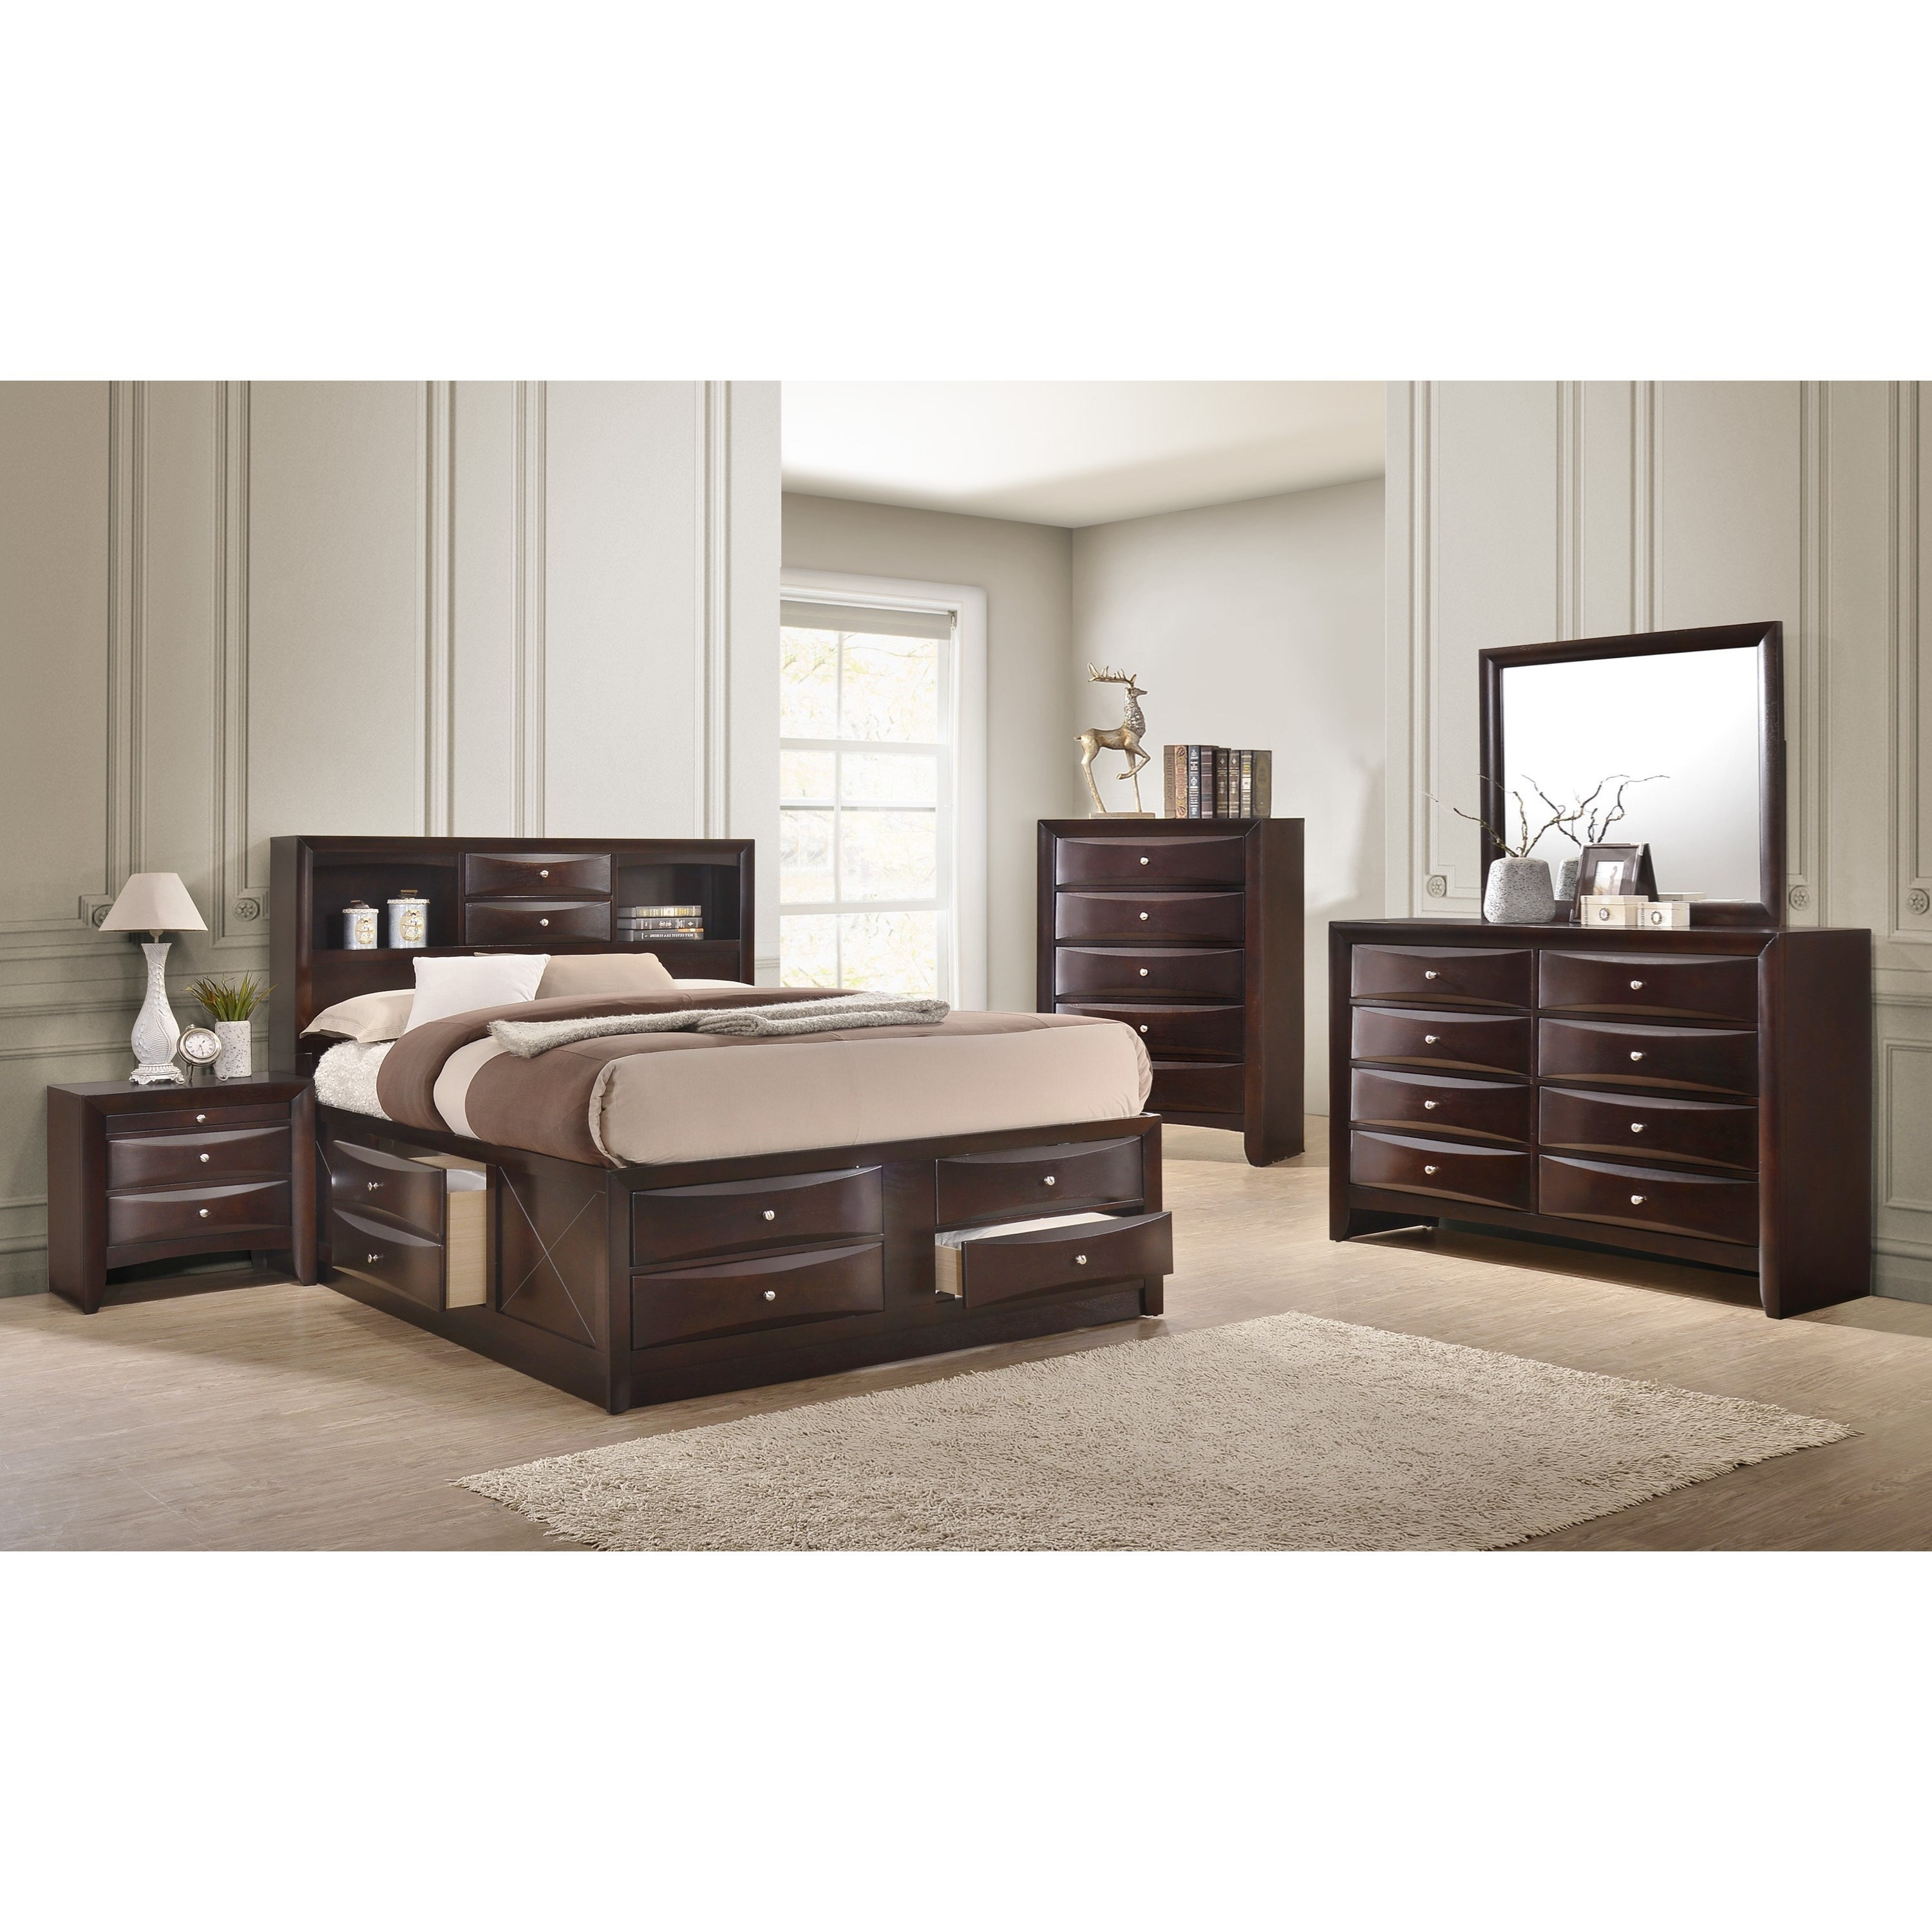 Crown Mark Emily Contemporary King Captain S Bed With Bookcase Headboard Royal Furniture Captain S Beds